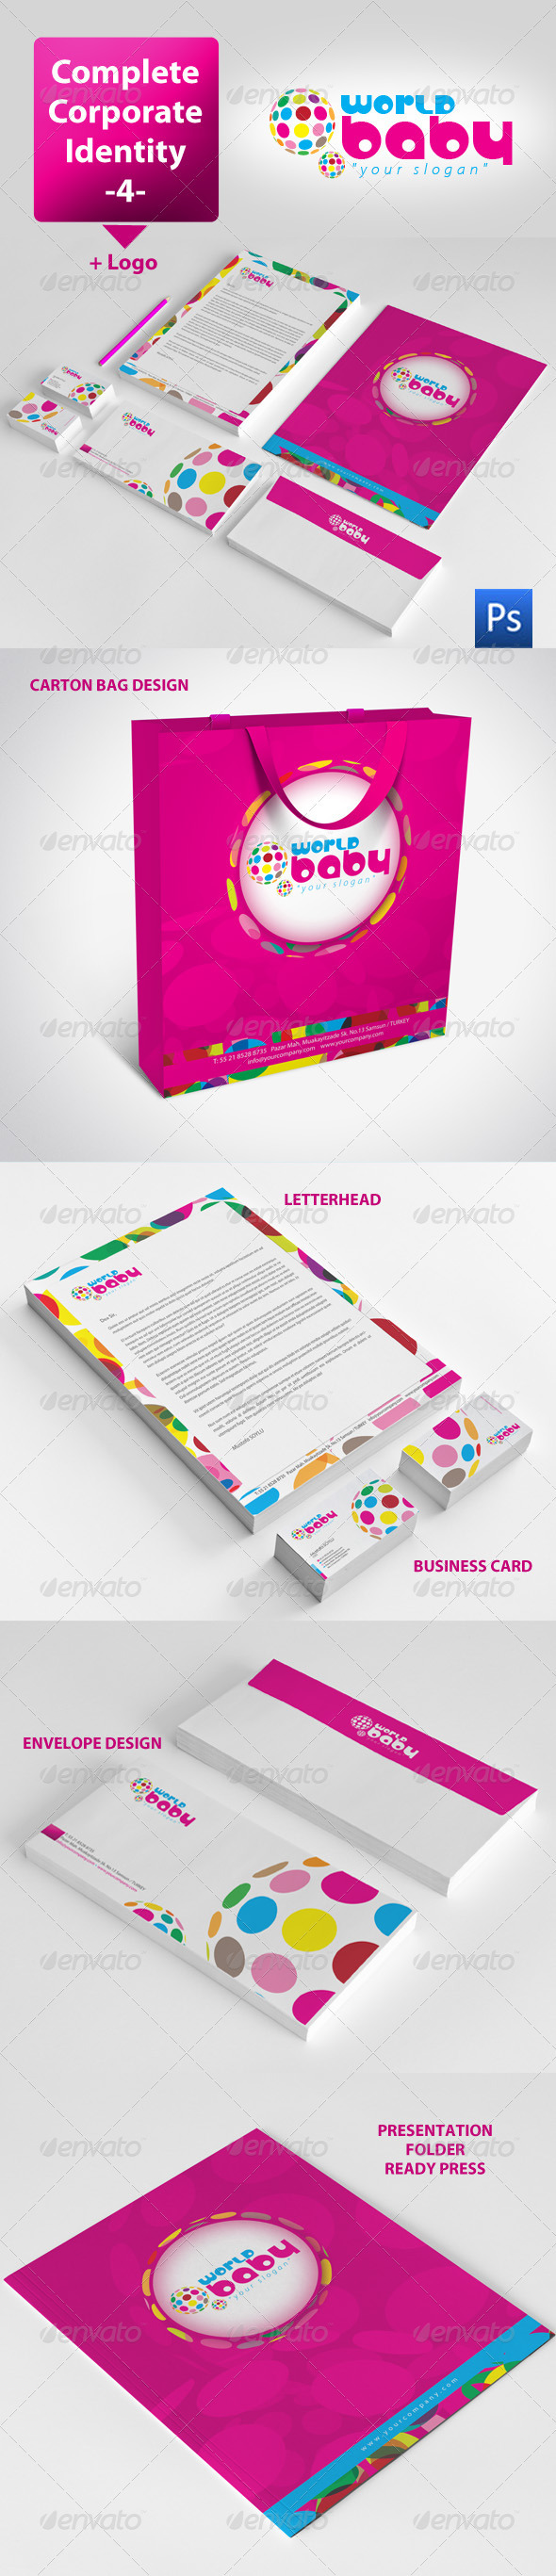 GraphicRiver World Baby Corporate Identity Package 3556465